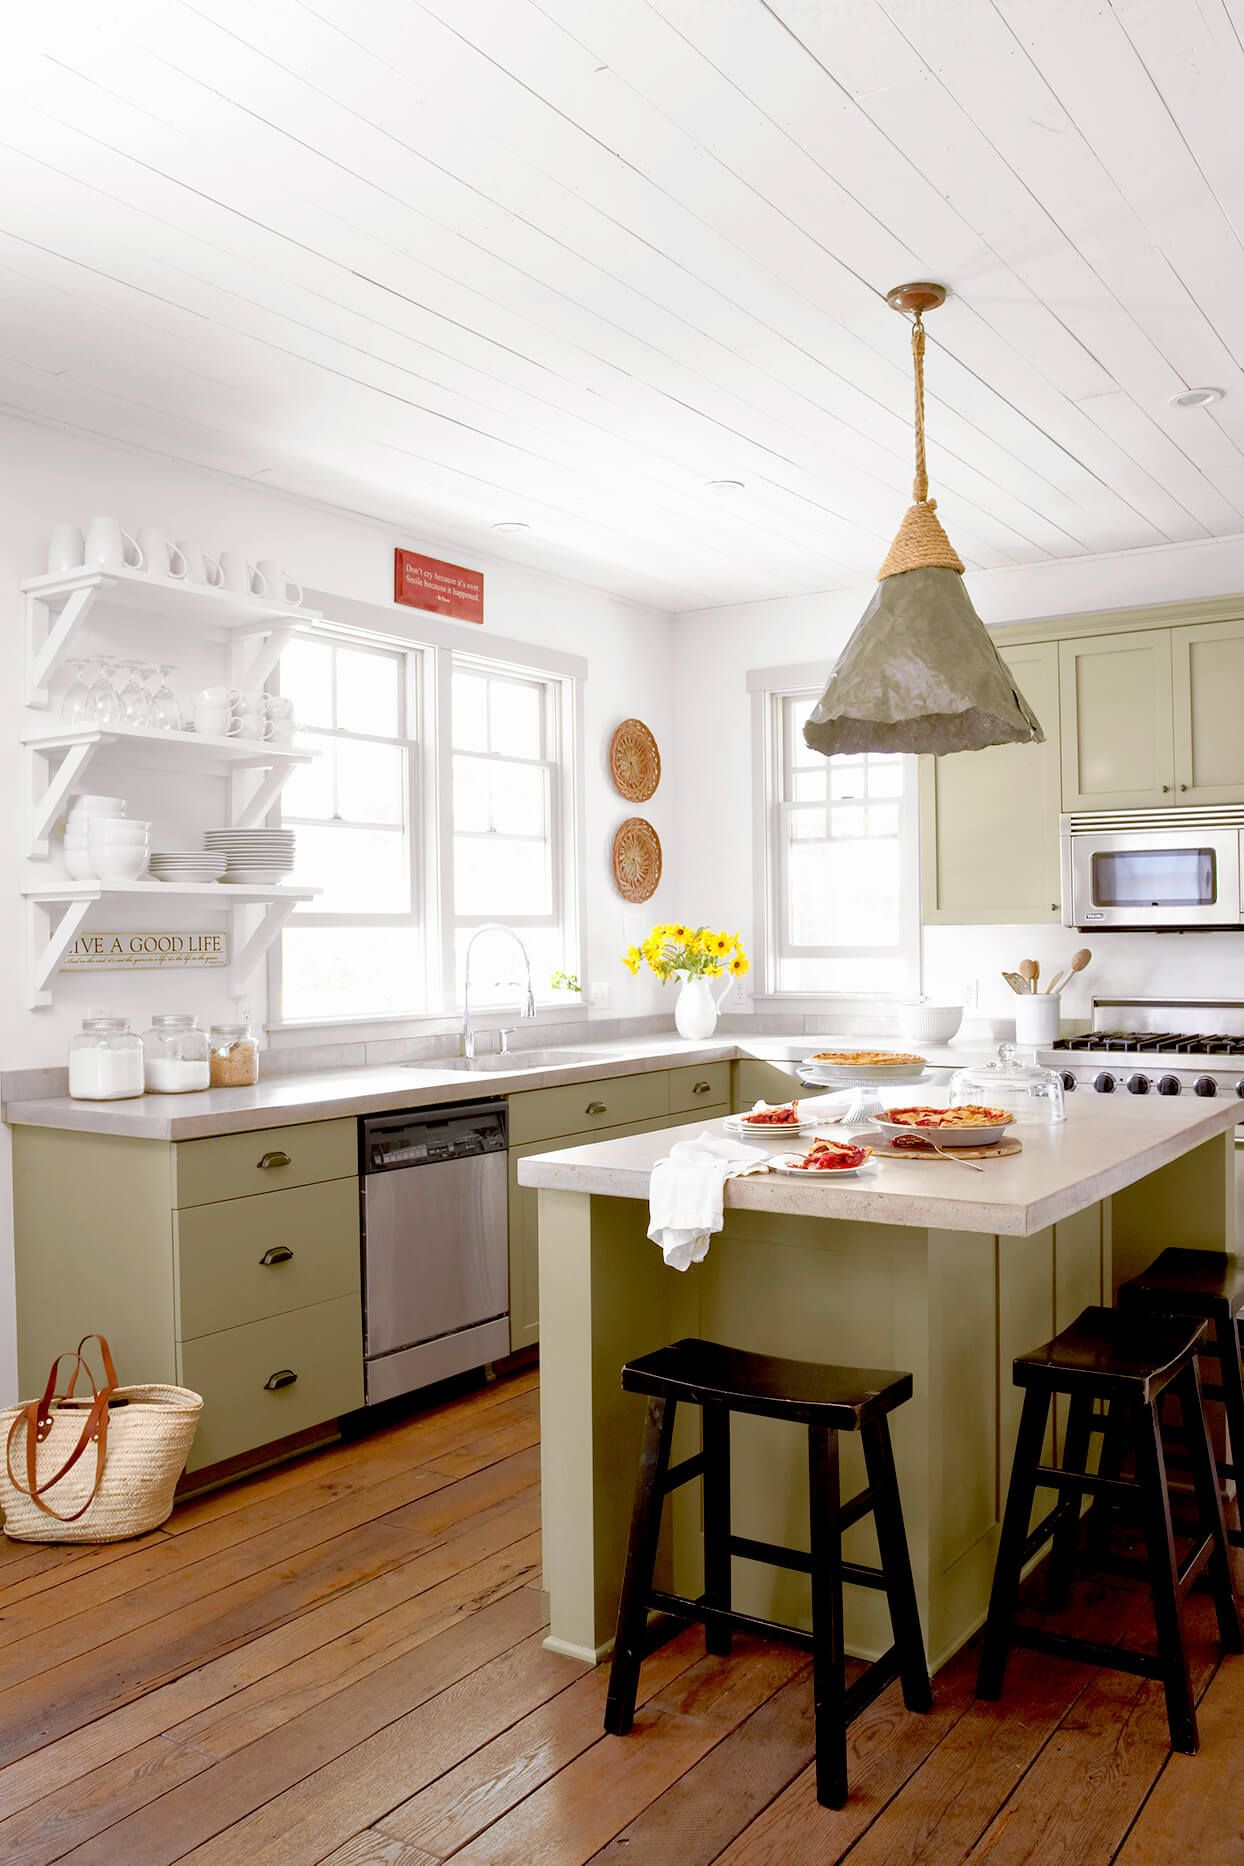 17 Farmhouse Kitchen Ideas that Give A New Atmosphere to